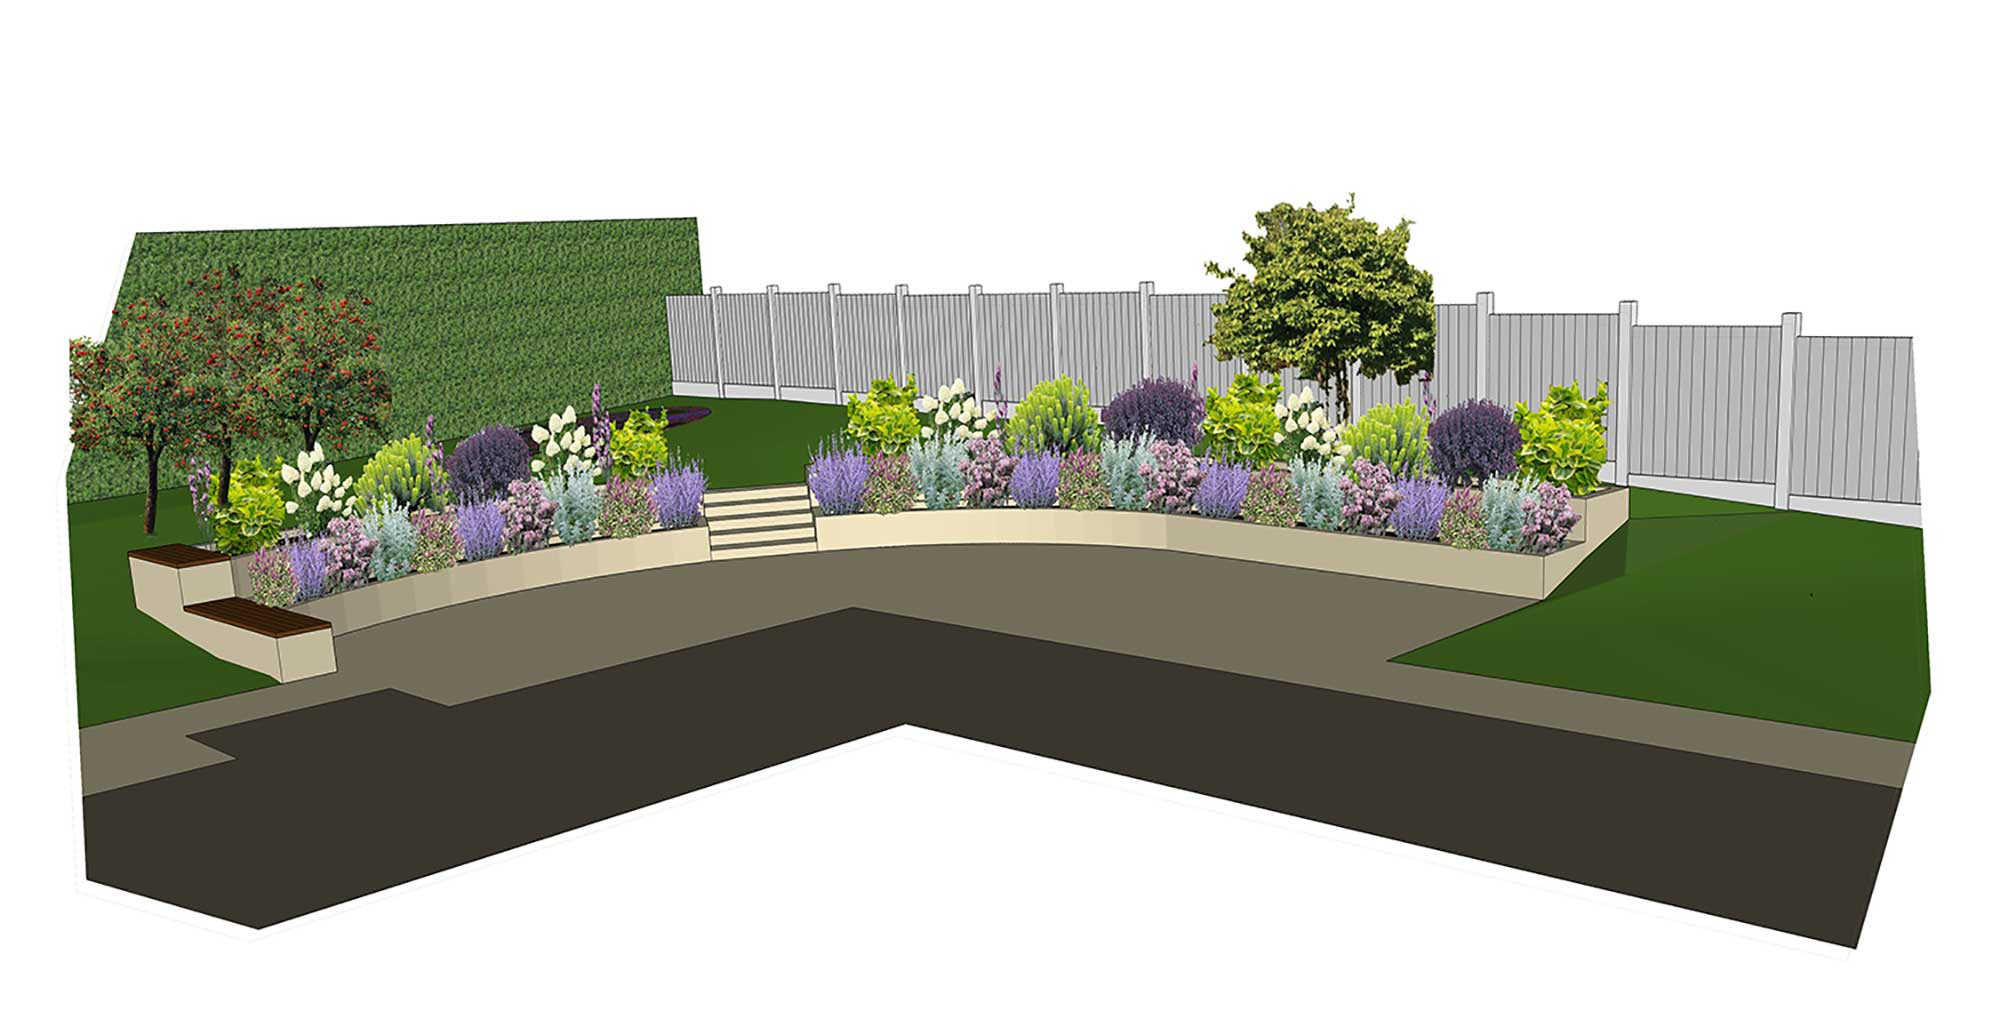 Rear garden design visualisation garden design layout for Garden designs and layouts